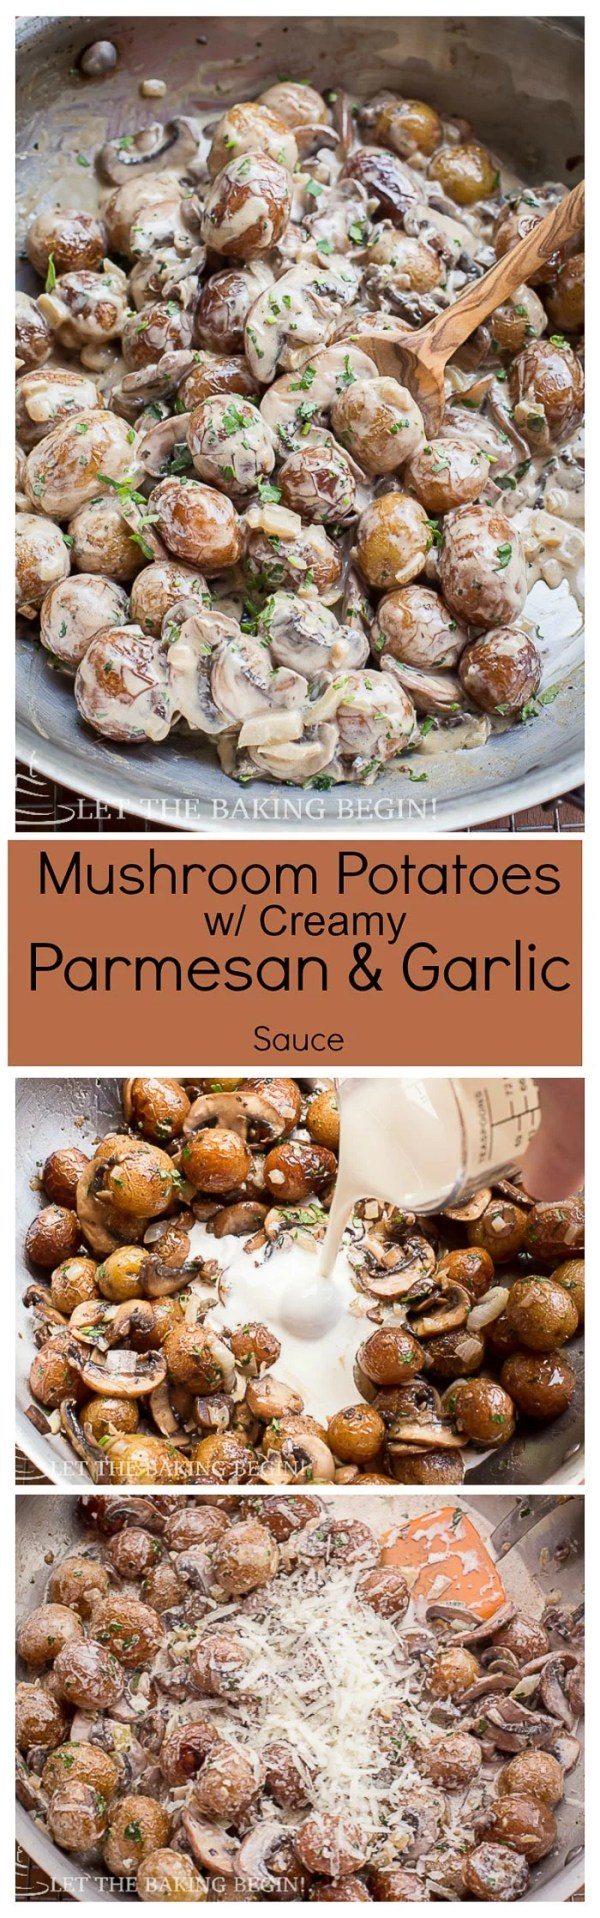 Creamy Mushroom Potatoes with Parmesan - The recipe you need to make for dinner tonight! You'll love these bite-size potatoes, smothered in delicious white Parmesan with garlic sauce! | Let the Baking Begin Blog.com